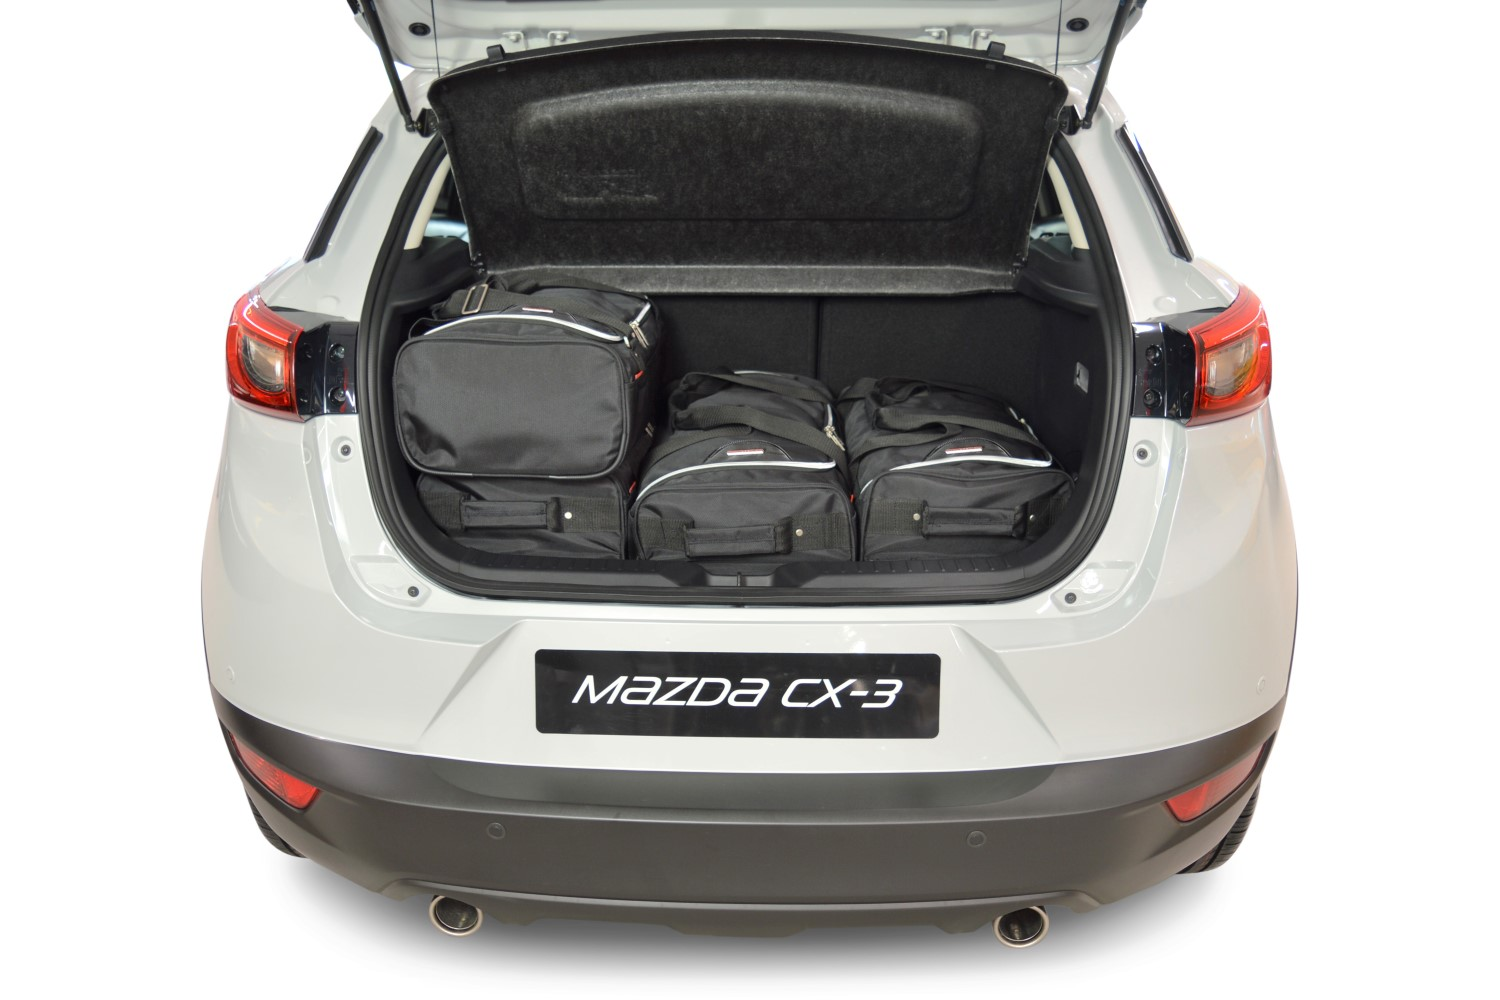 cx 3 mazda cx 3 2015 present car bags travel bags. Black Bedroom Furniture Sets. Home Design Ideas